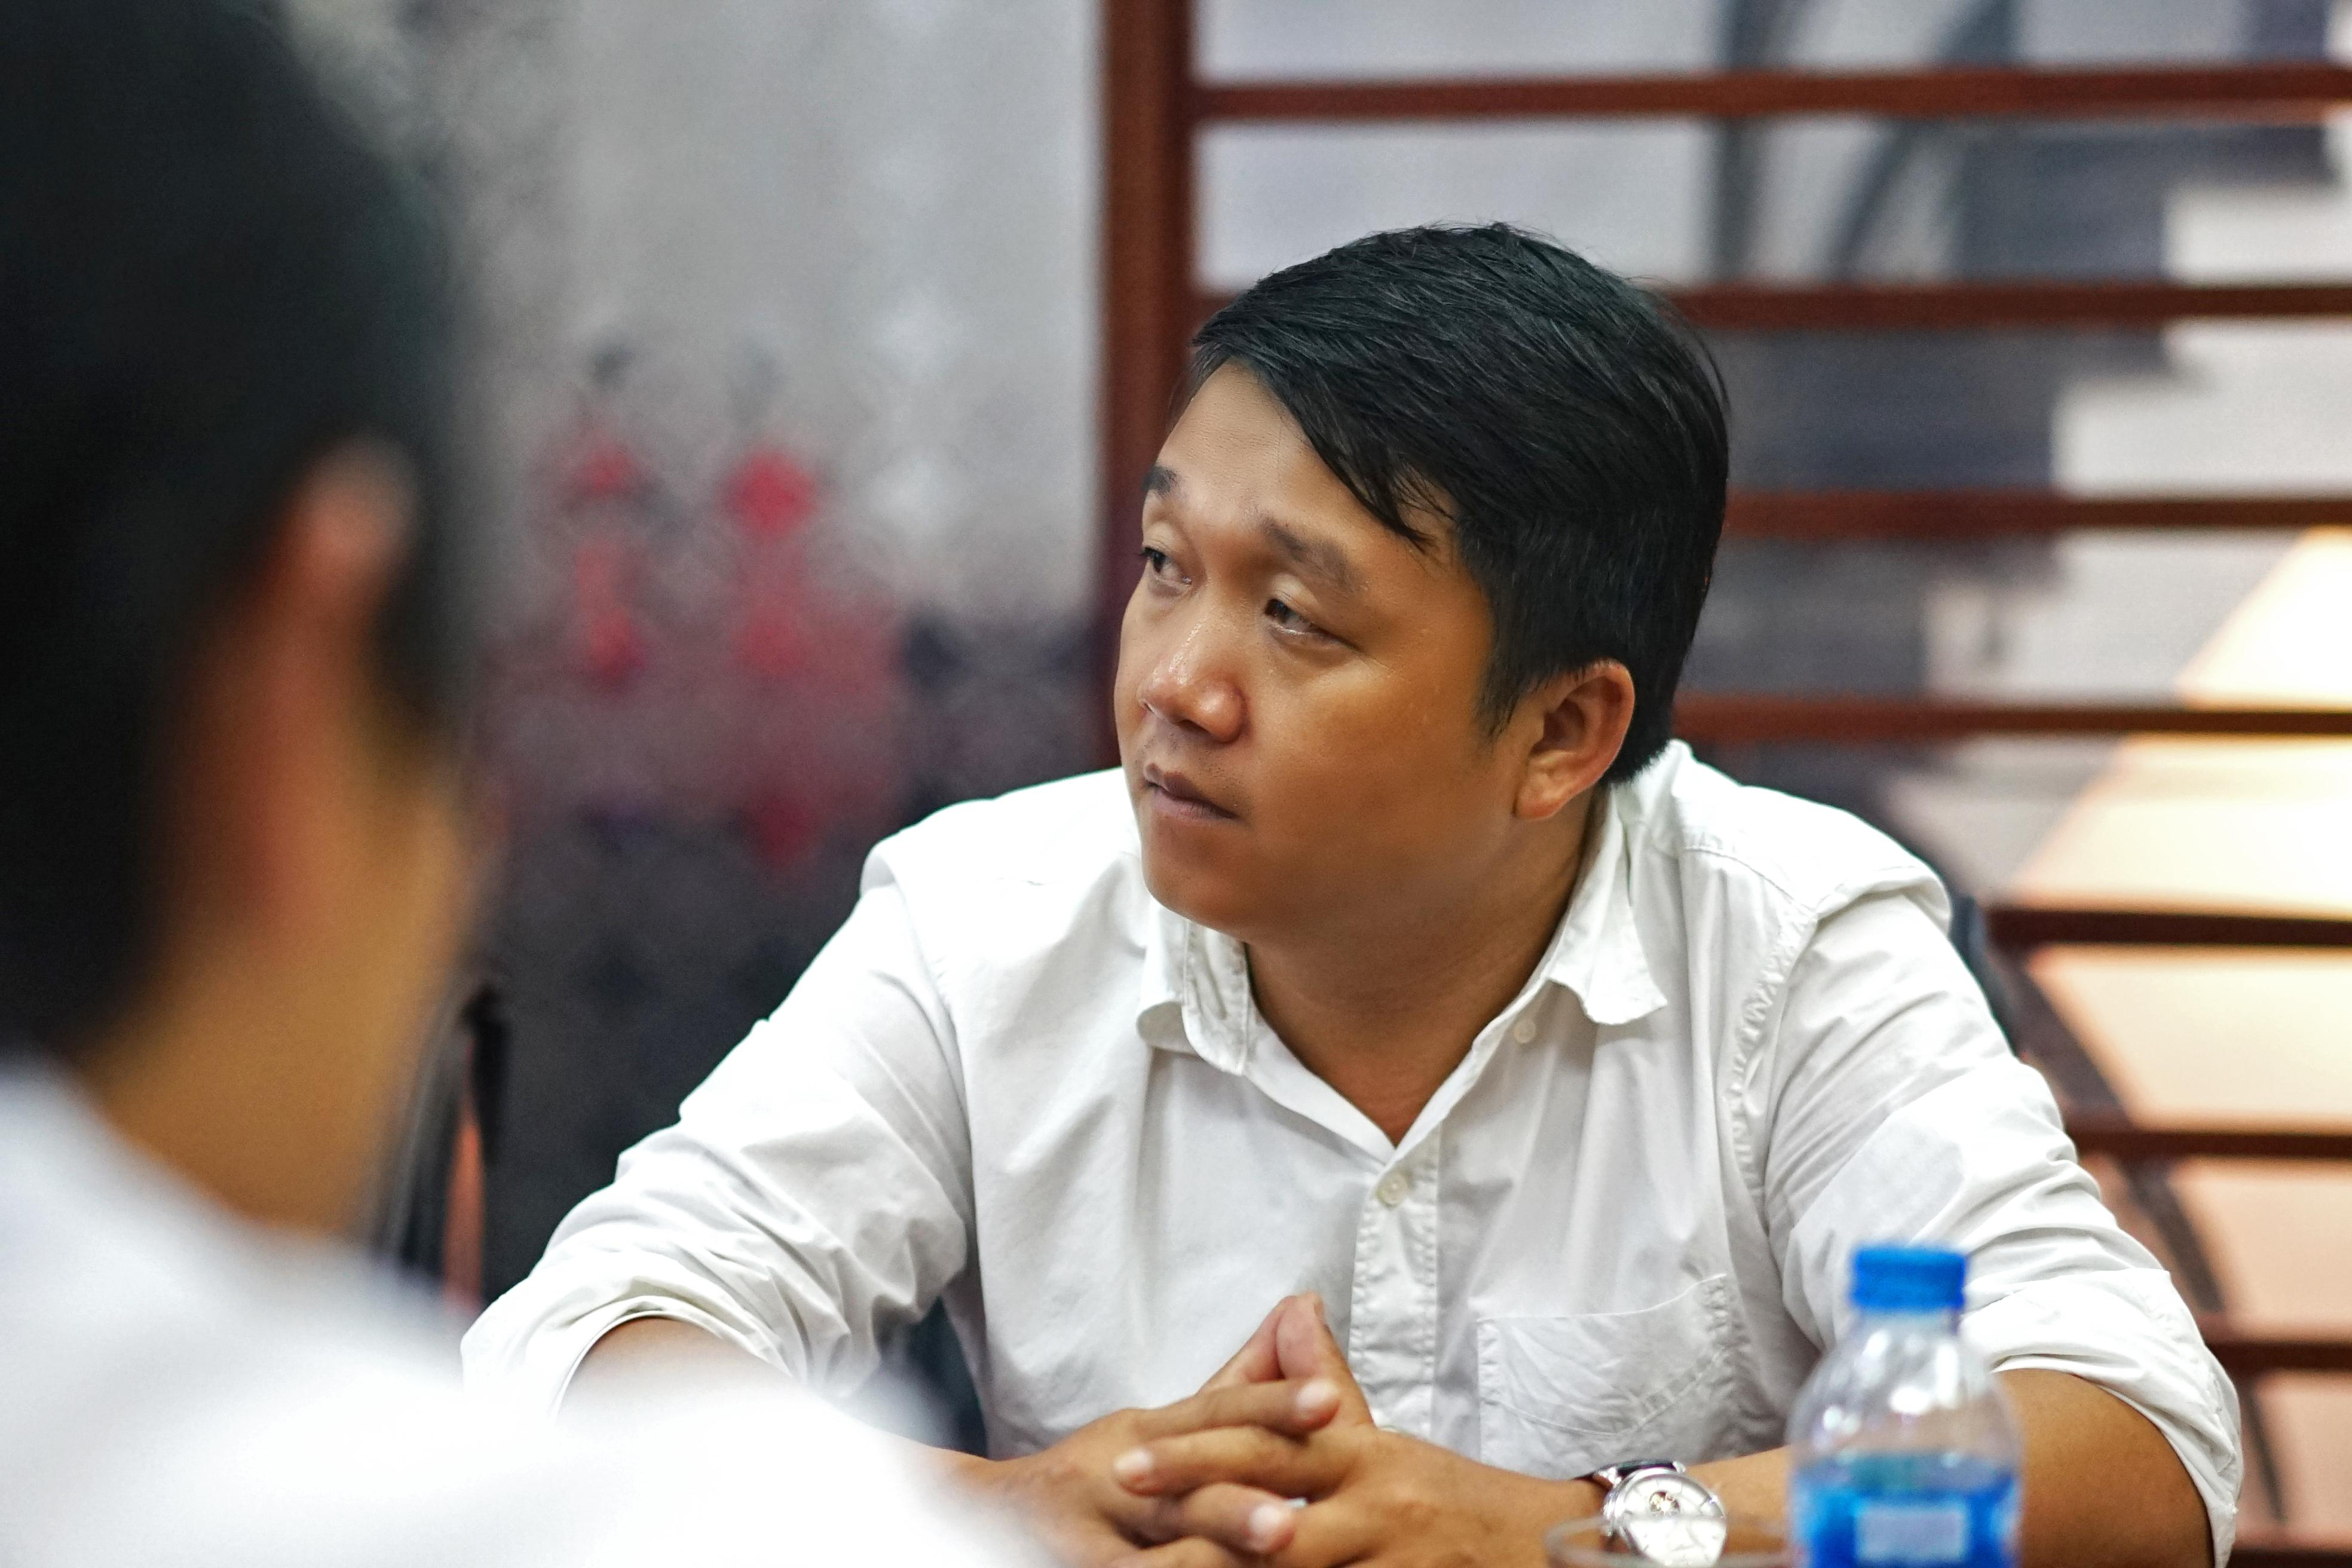 Mr. Le Trung Dung – Chairman of MINDIPILE Foundation JSC